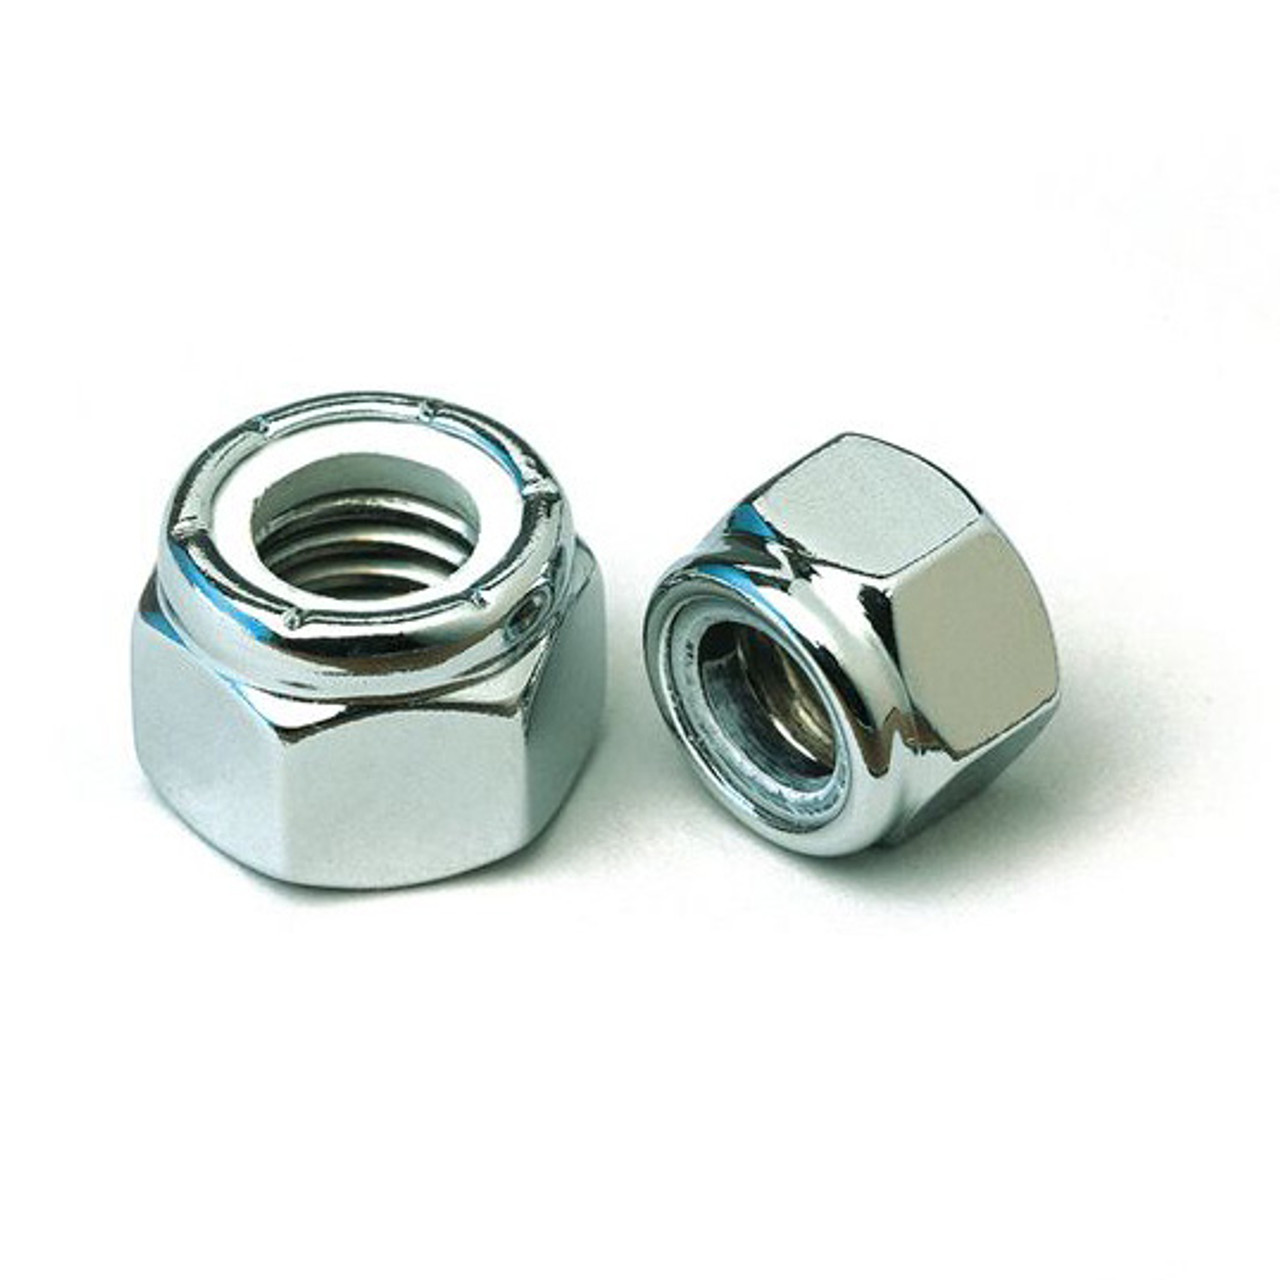 1/4 - 28 UNF Chrome Nylon Insert Lock Nut